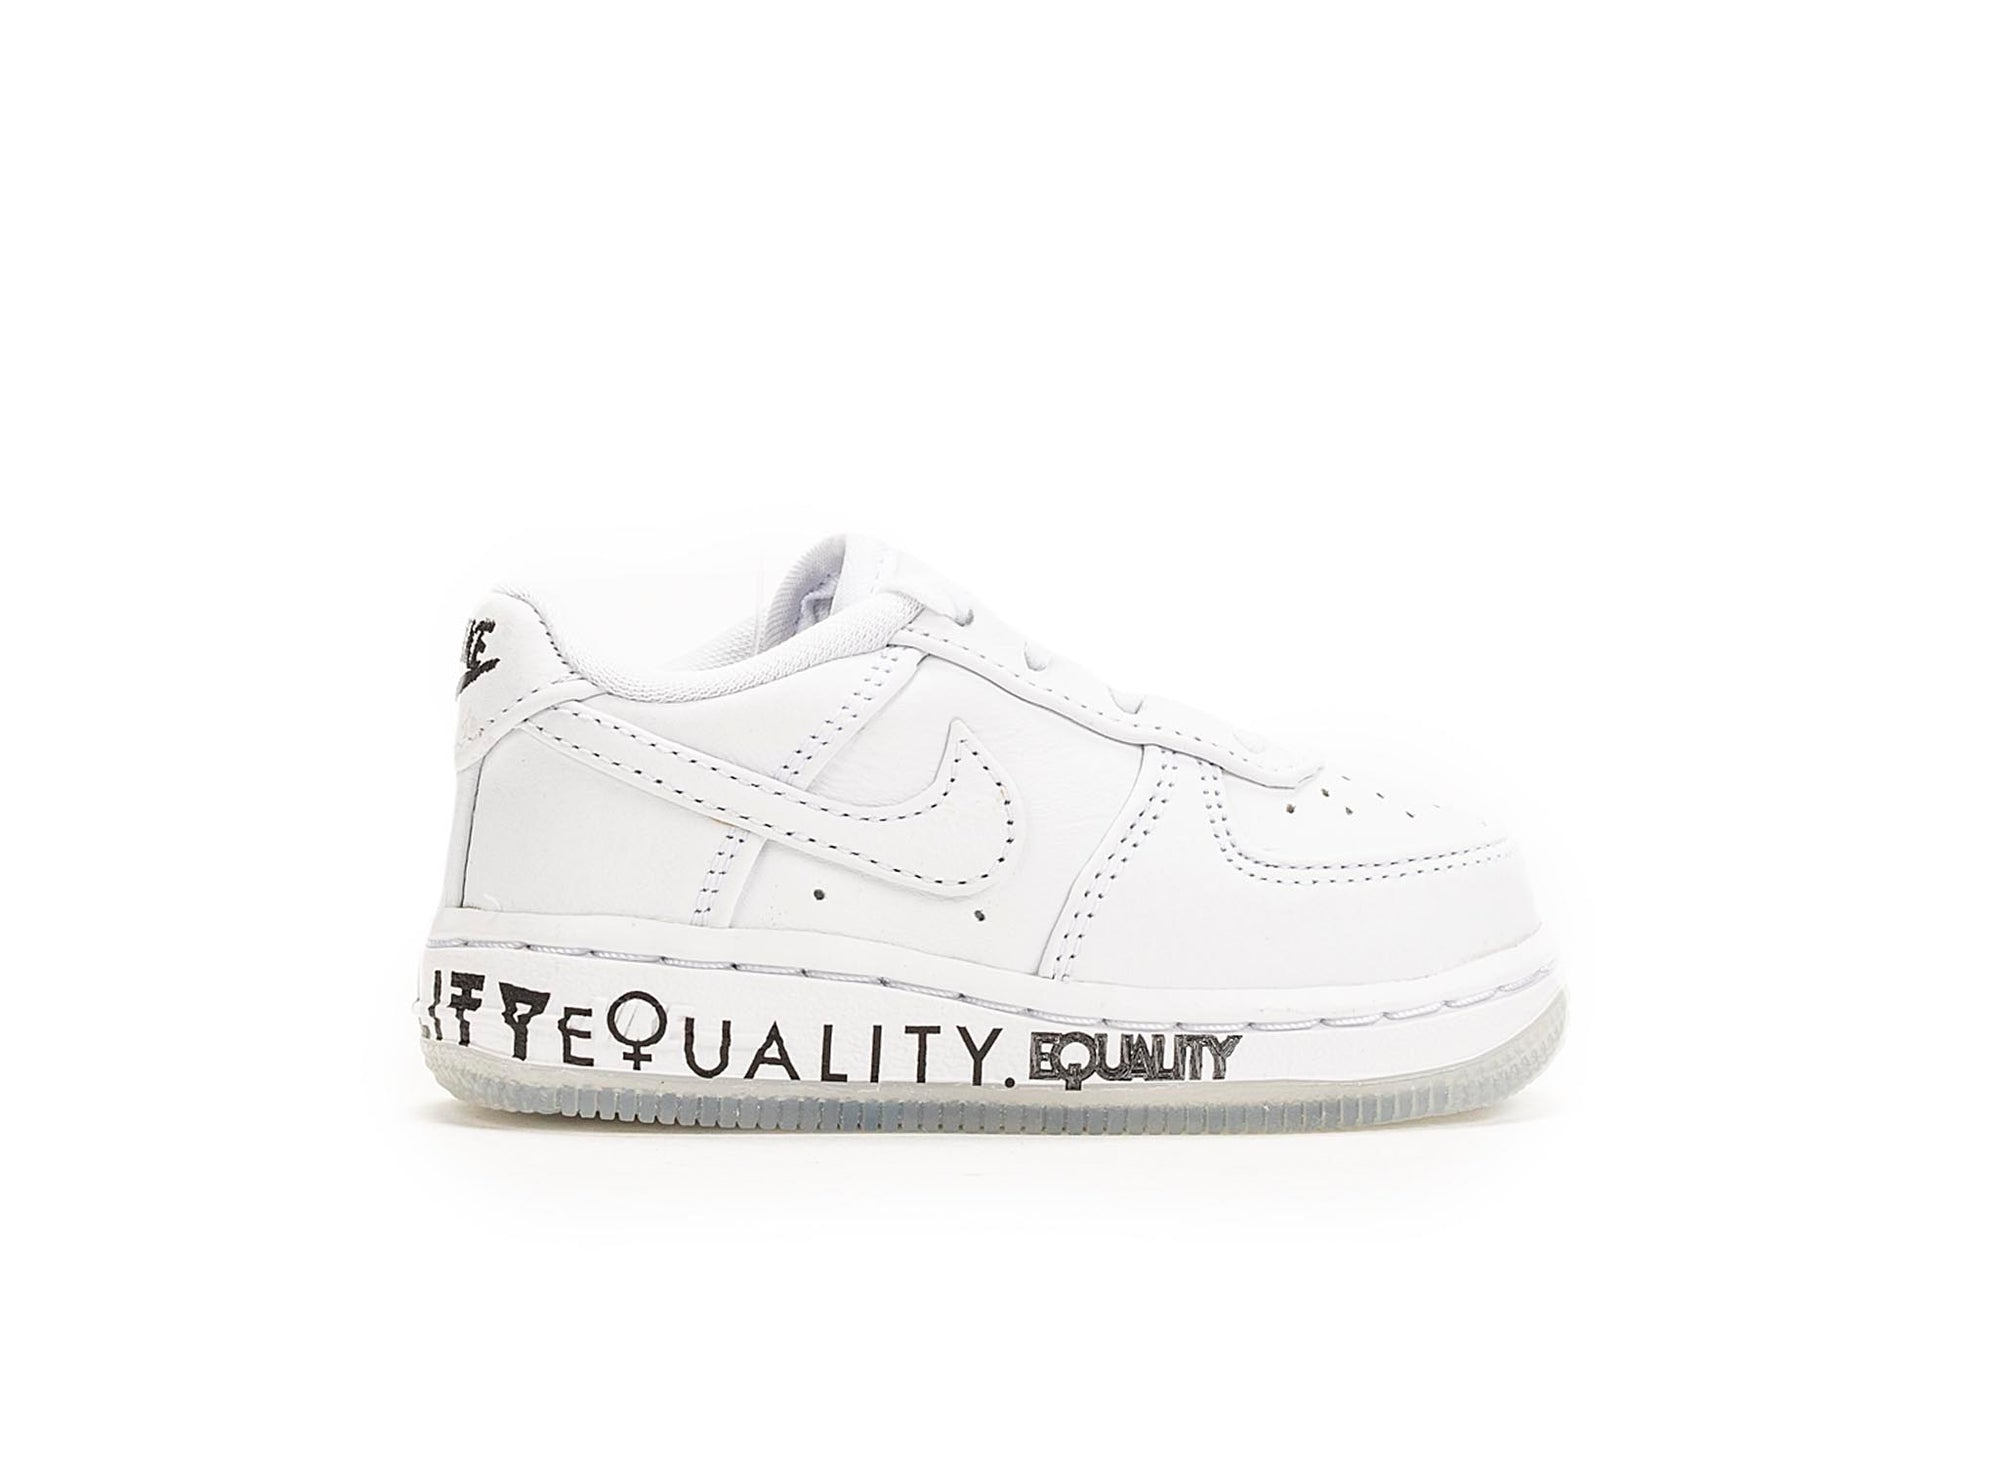 NIKE FORCE 1 EQUALITY KIDS toddler